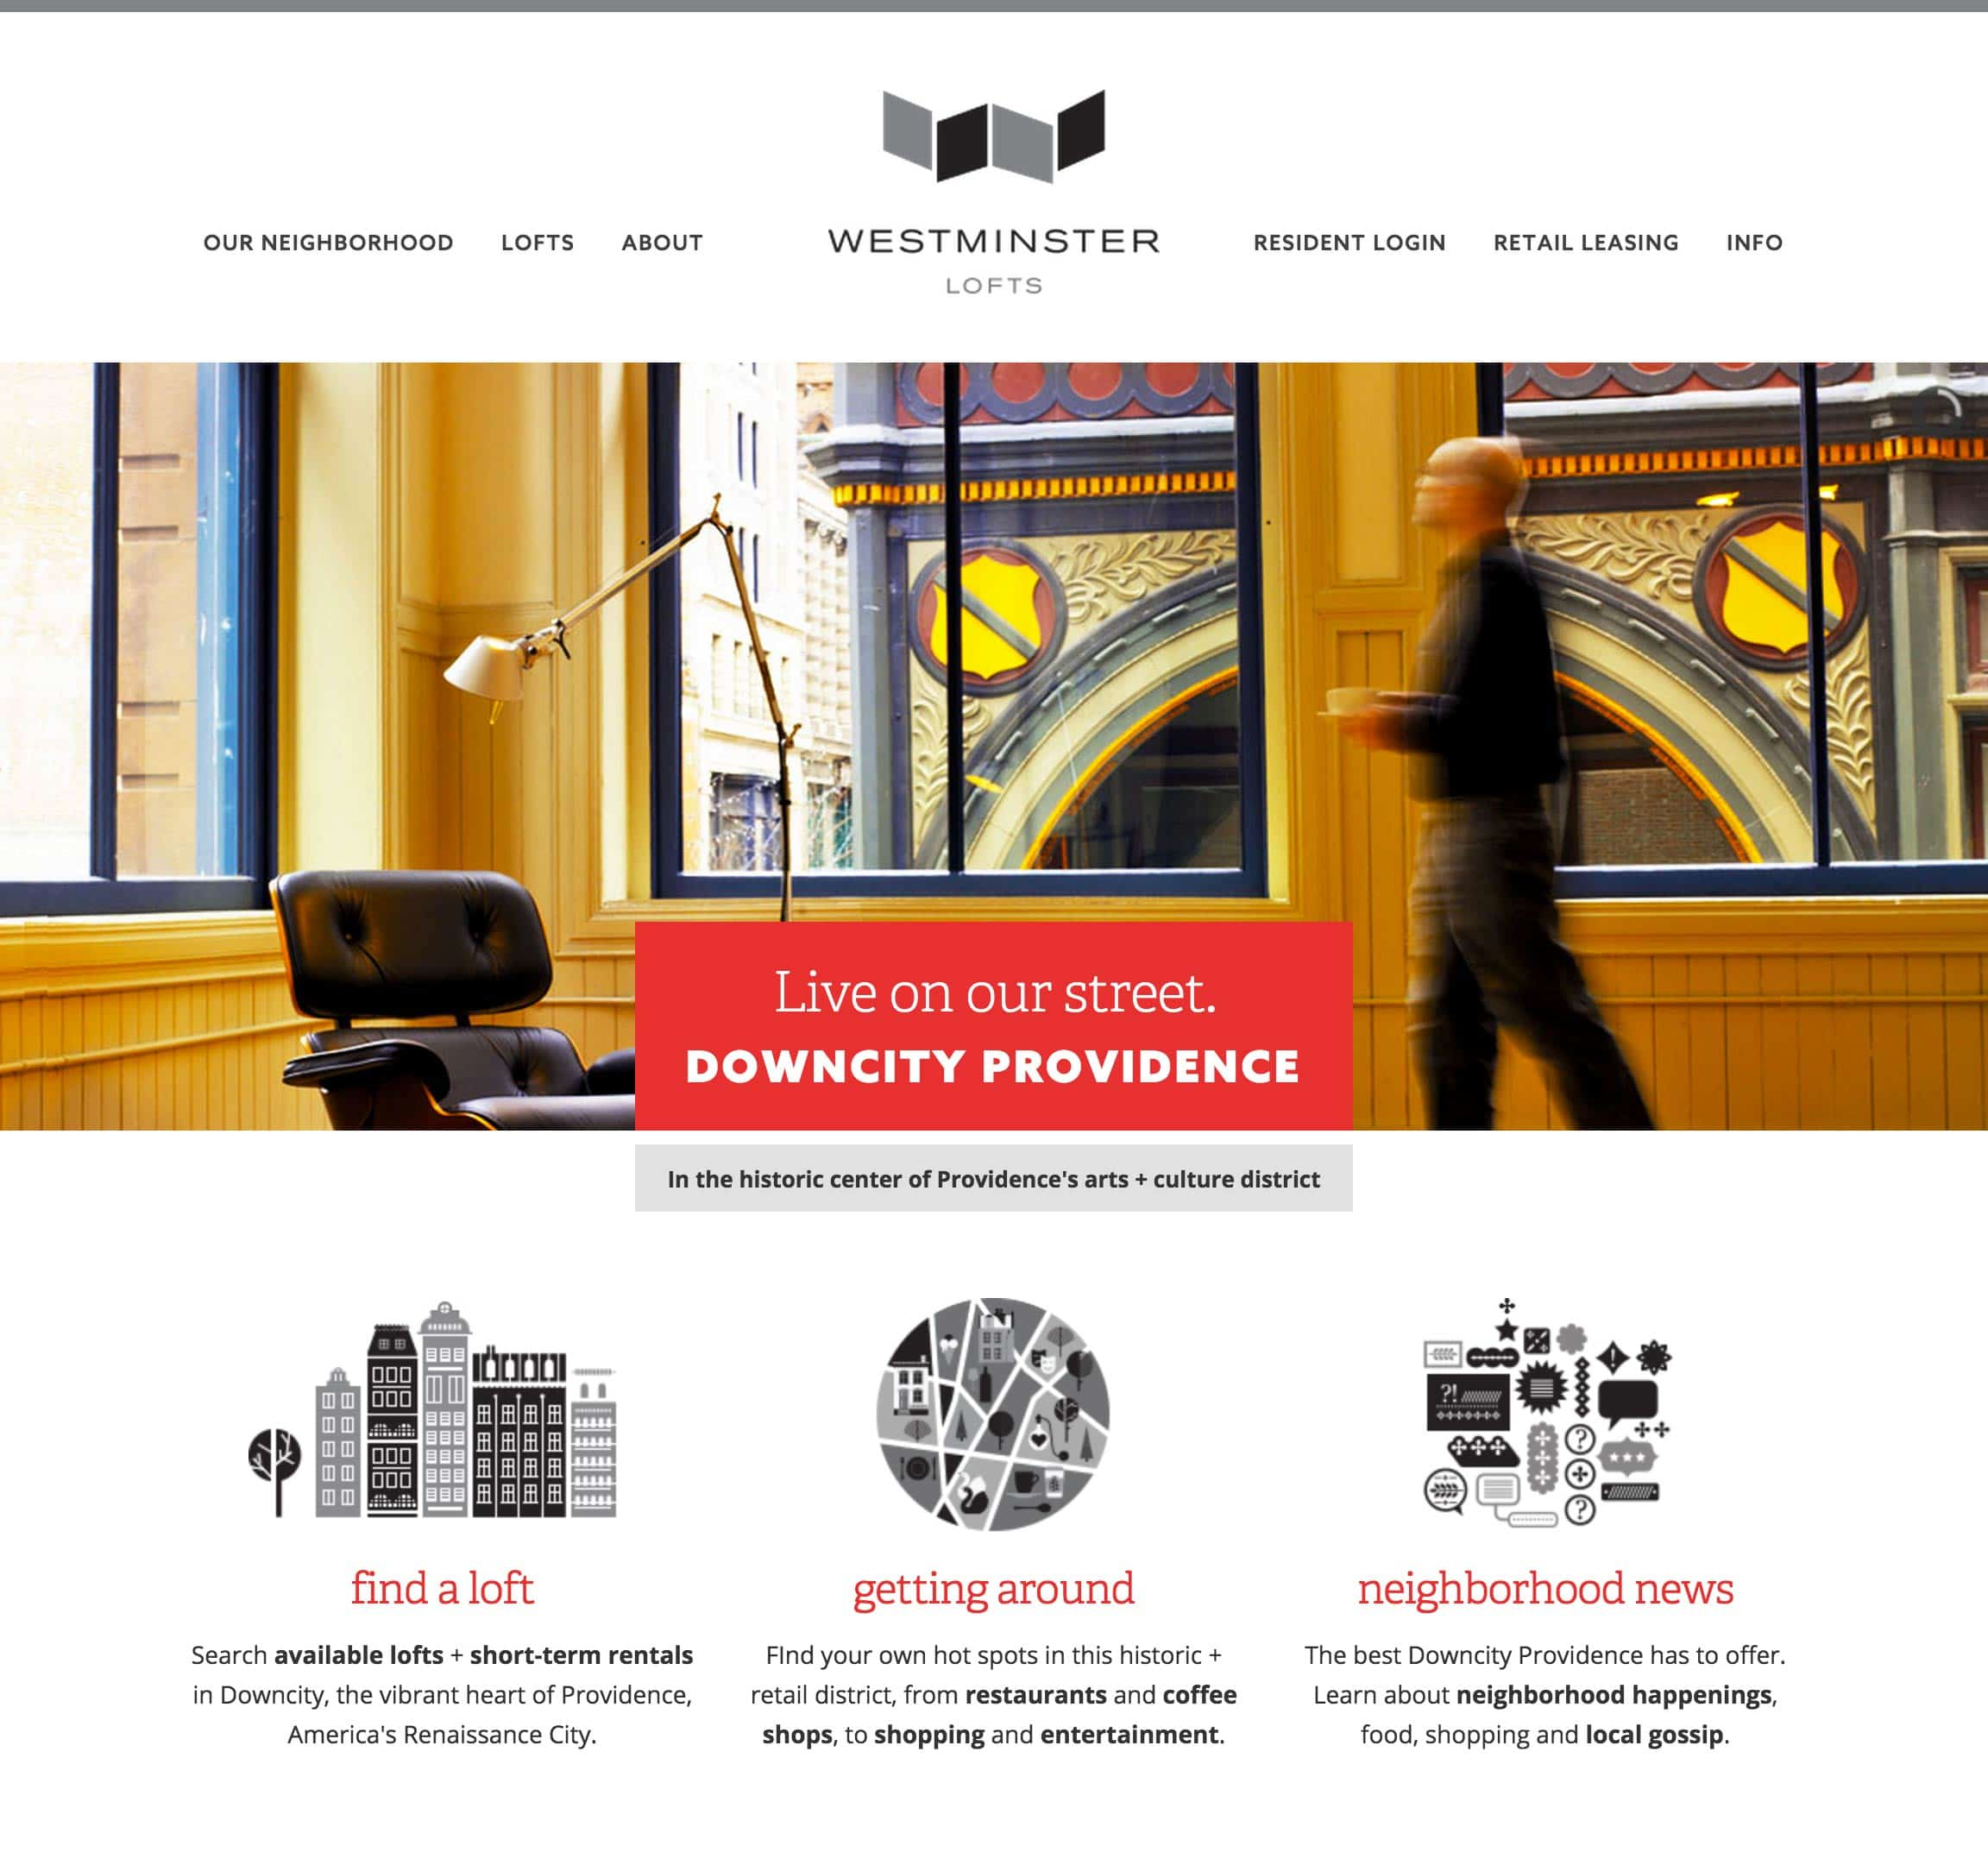 mobile web design and development for loft and flat real estate in Providence, RI